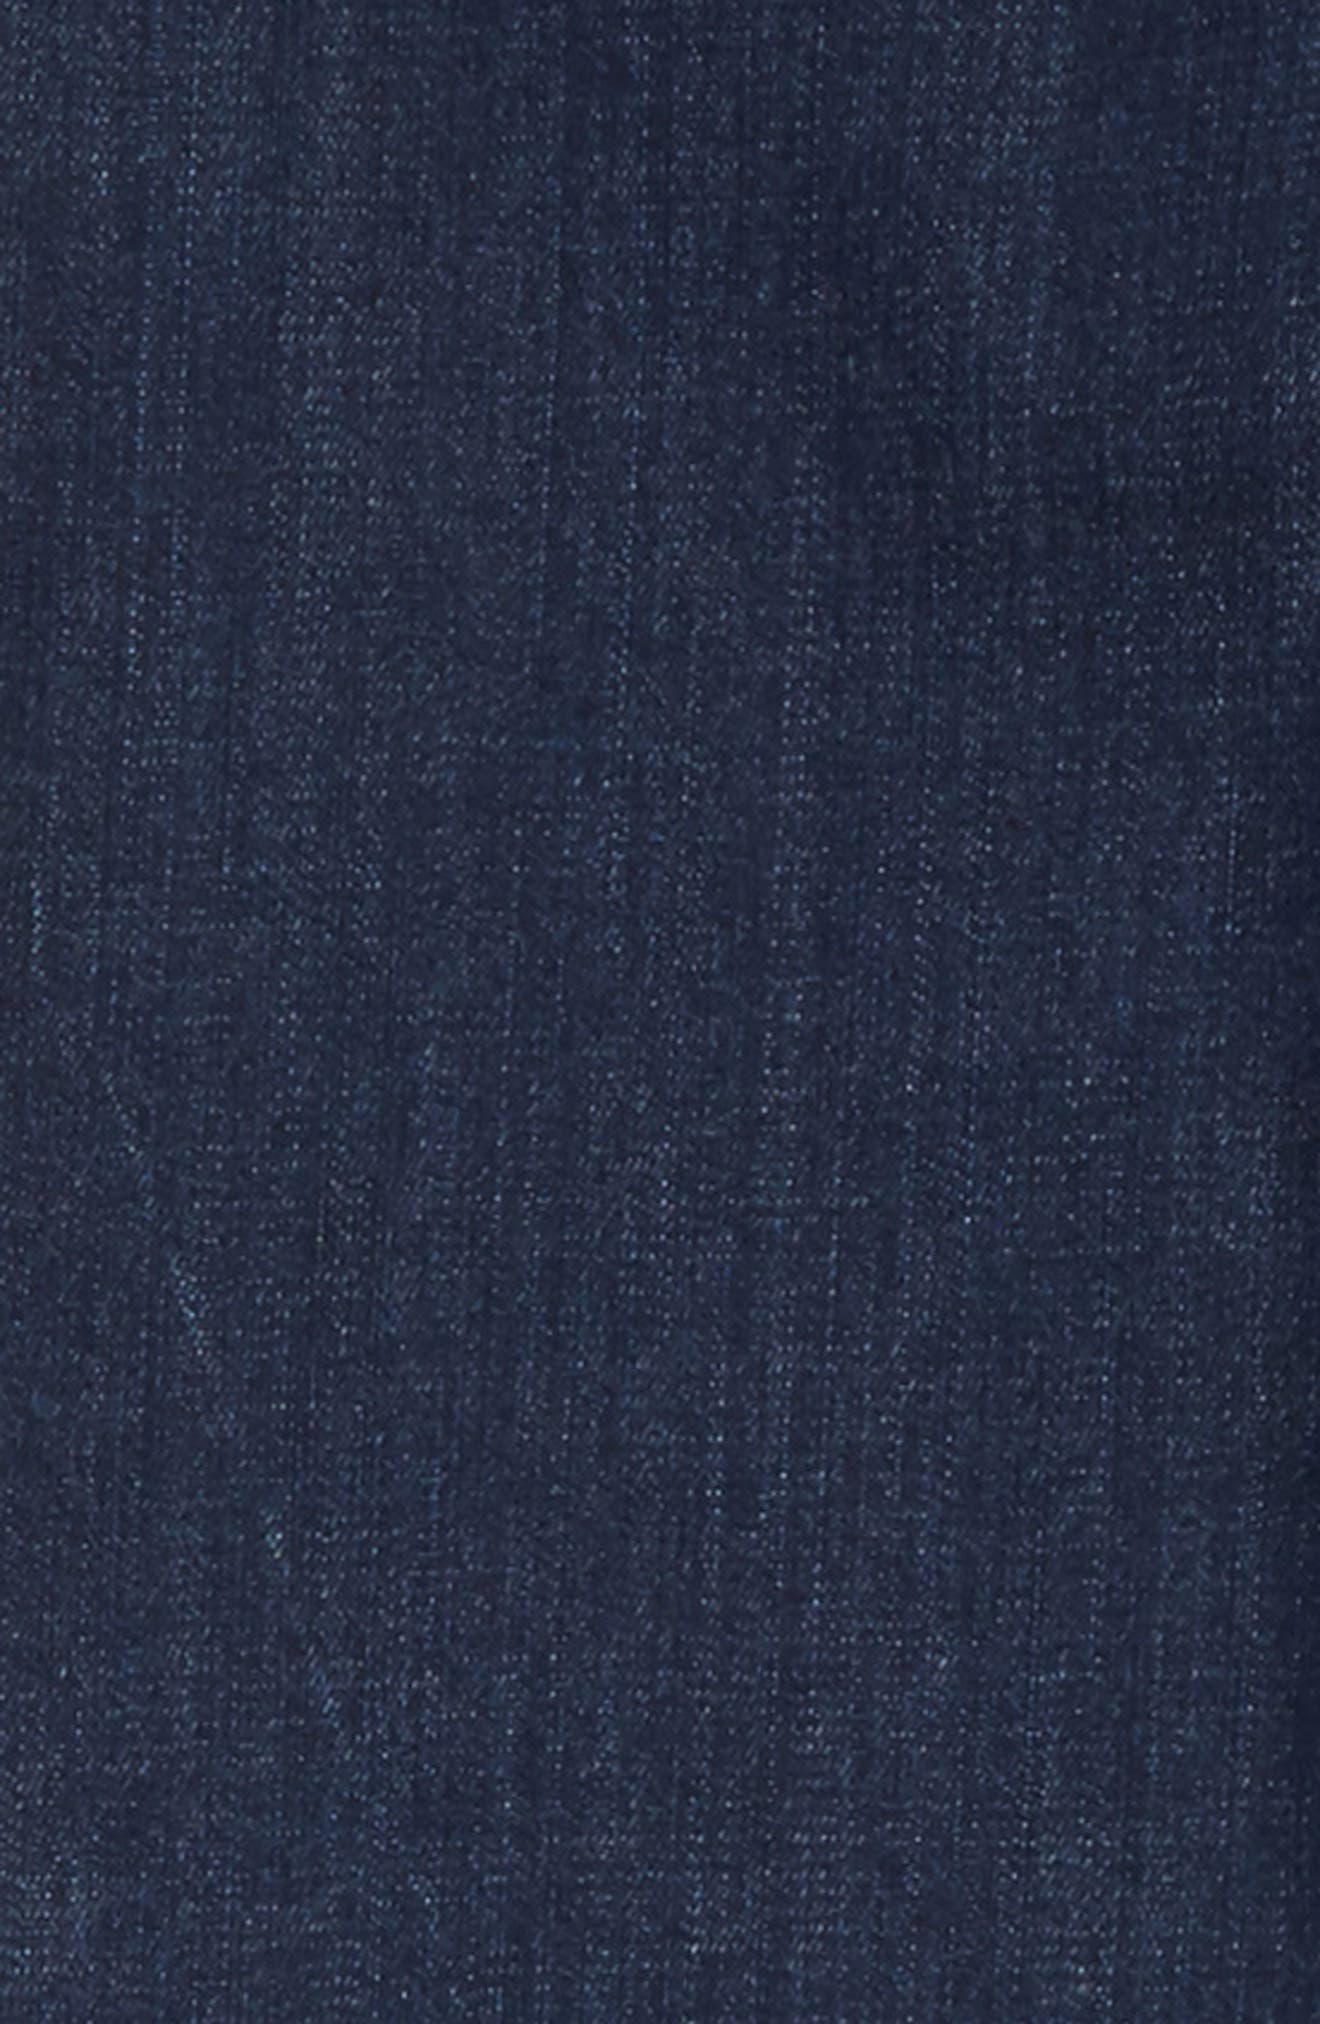 Dolly Skinny Jeans,                             Alternate thumbnail 4, color,                             Antique